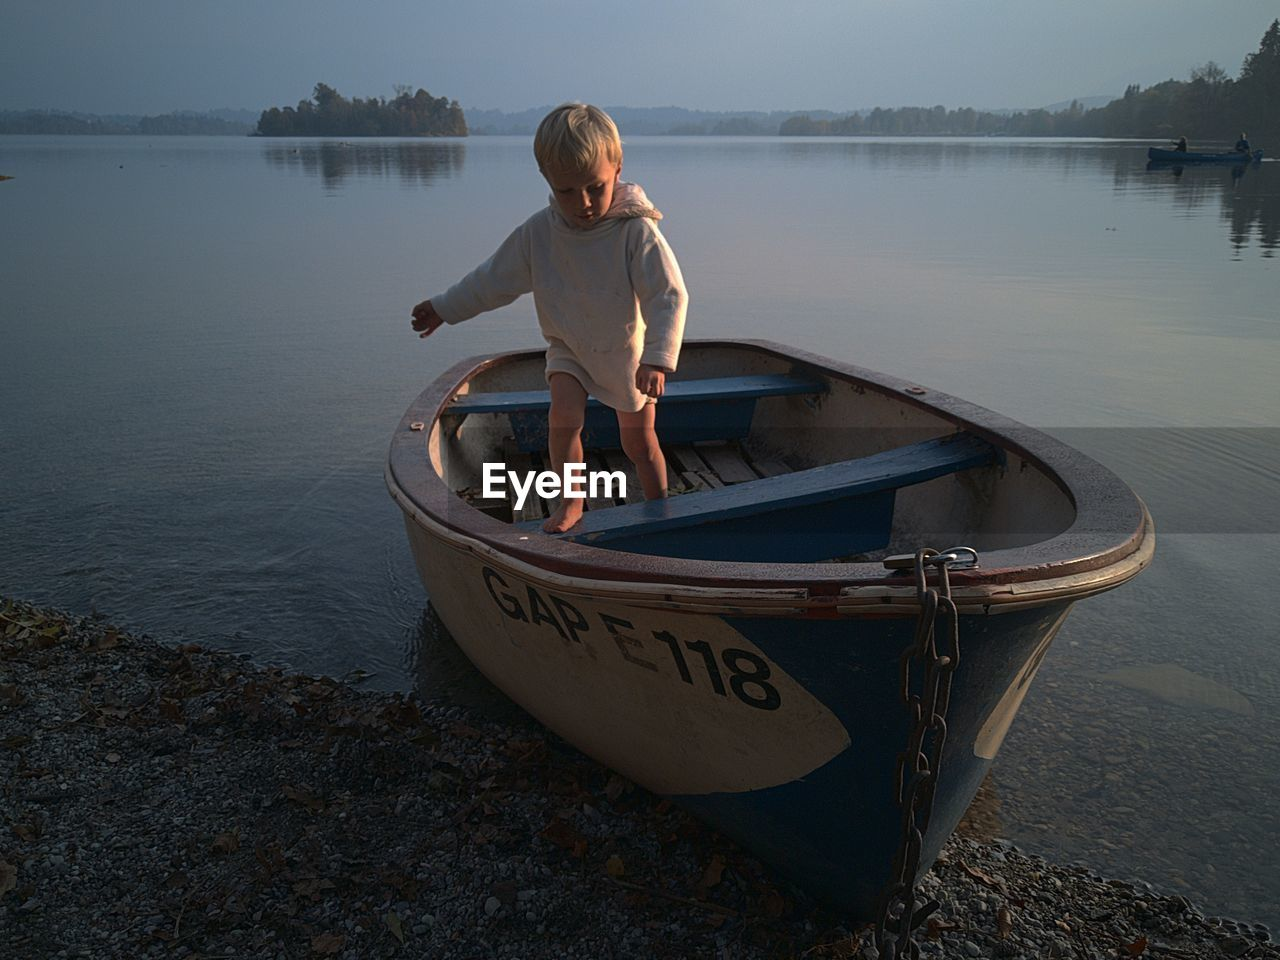 BOY STANDING IN BOAT ON LAKE